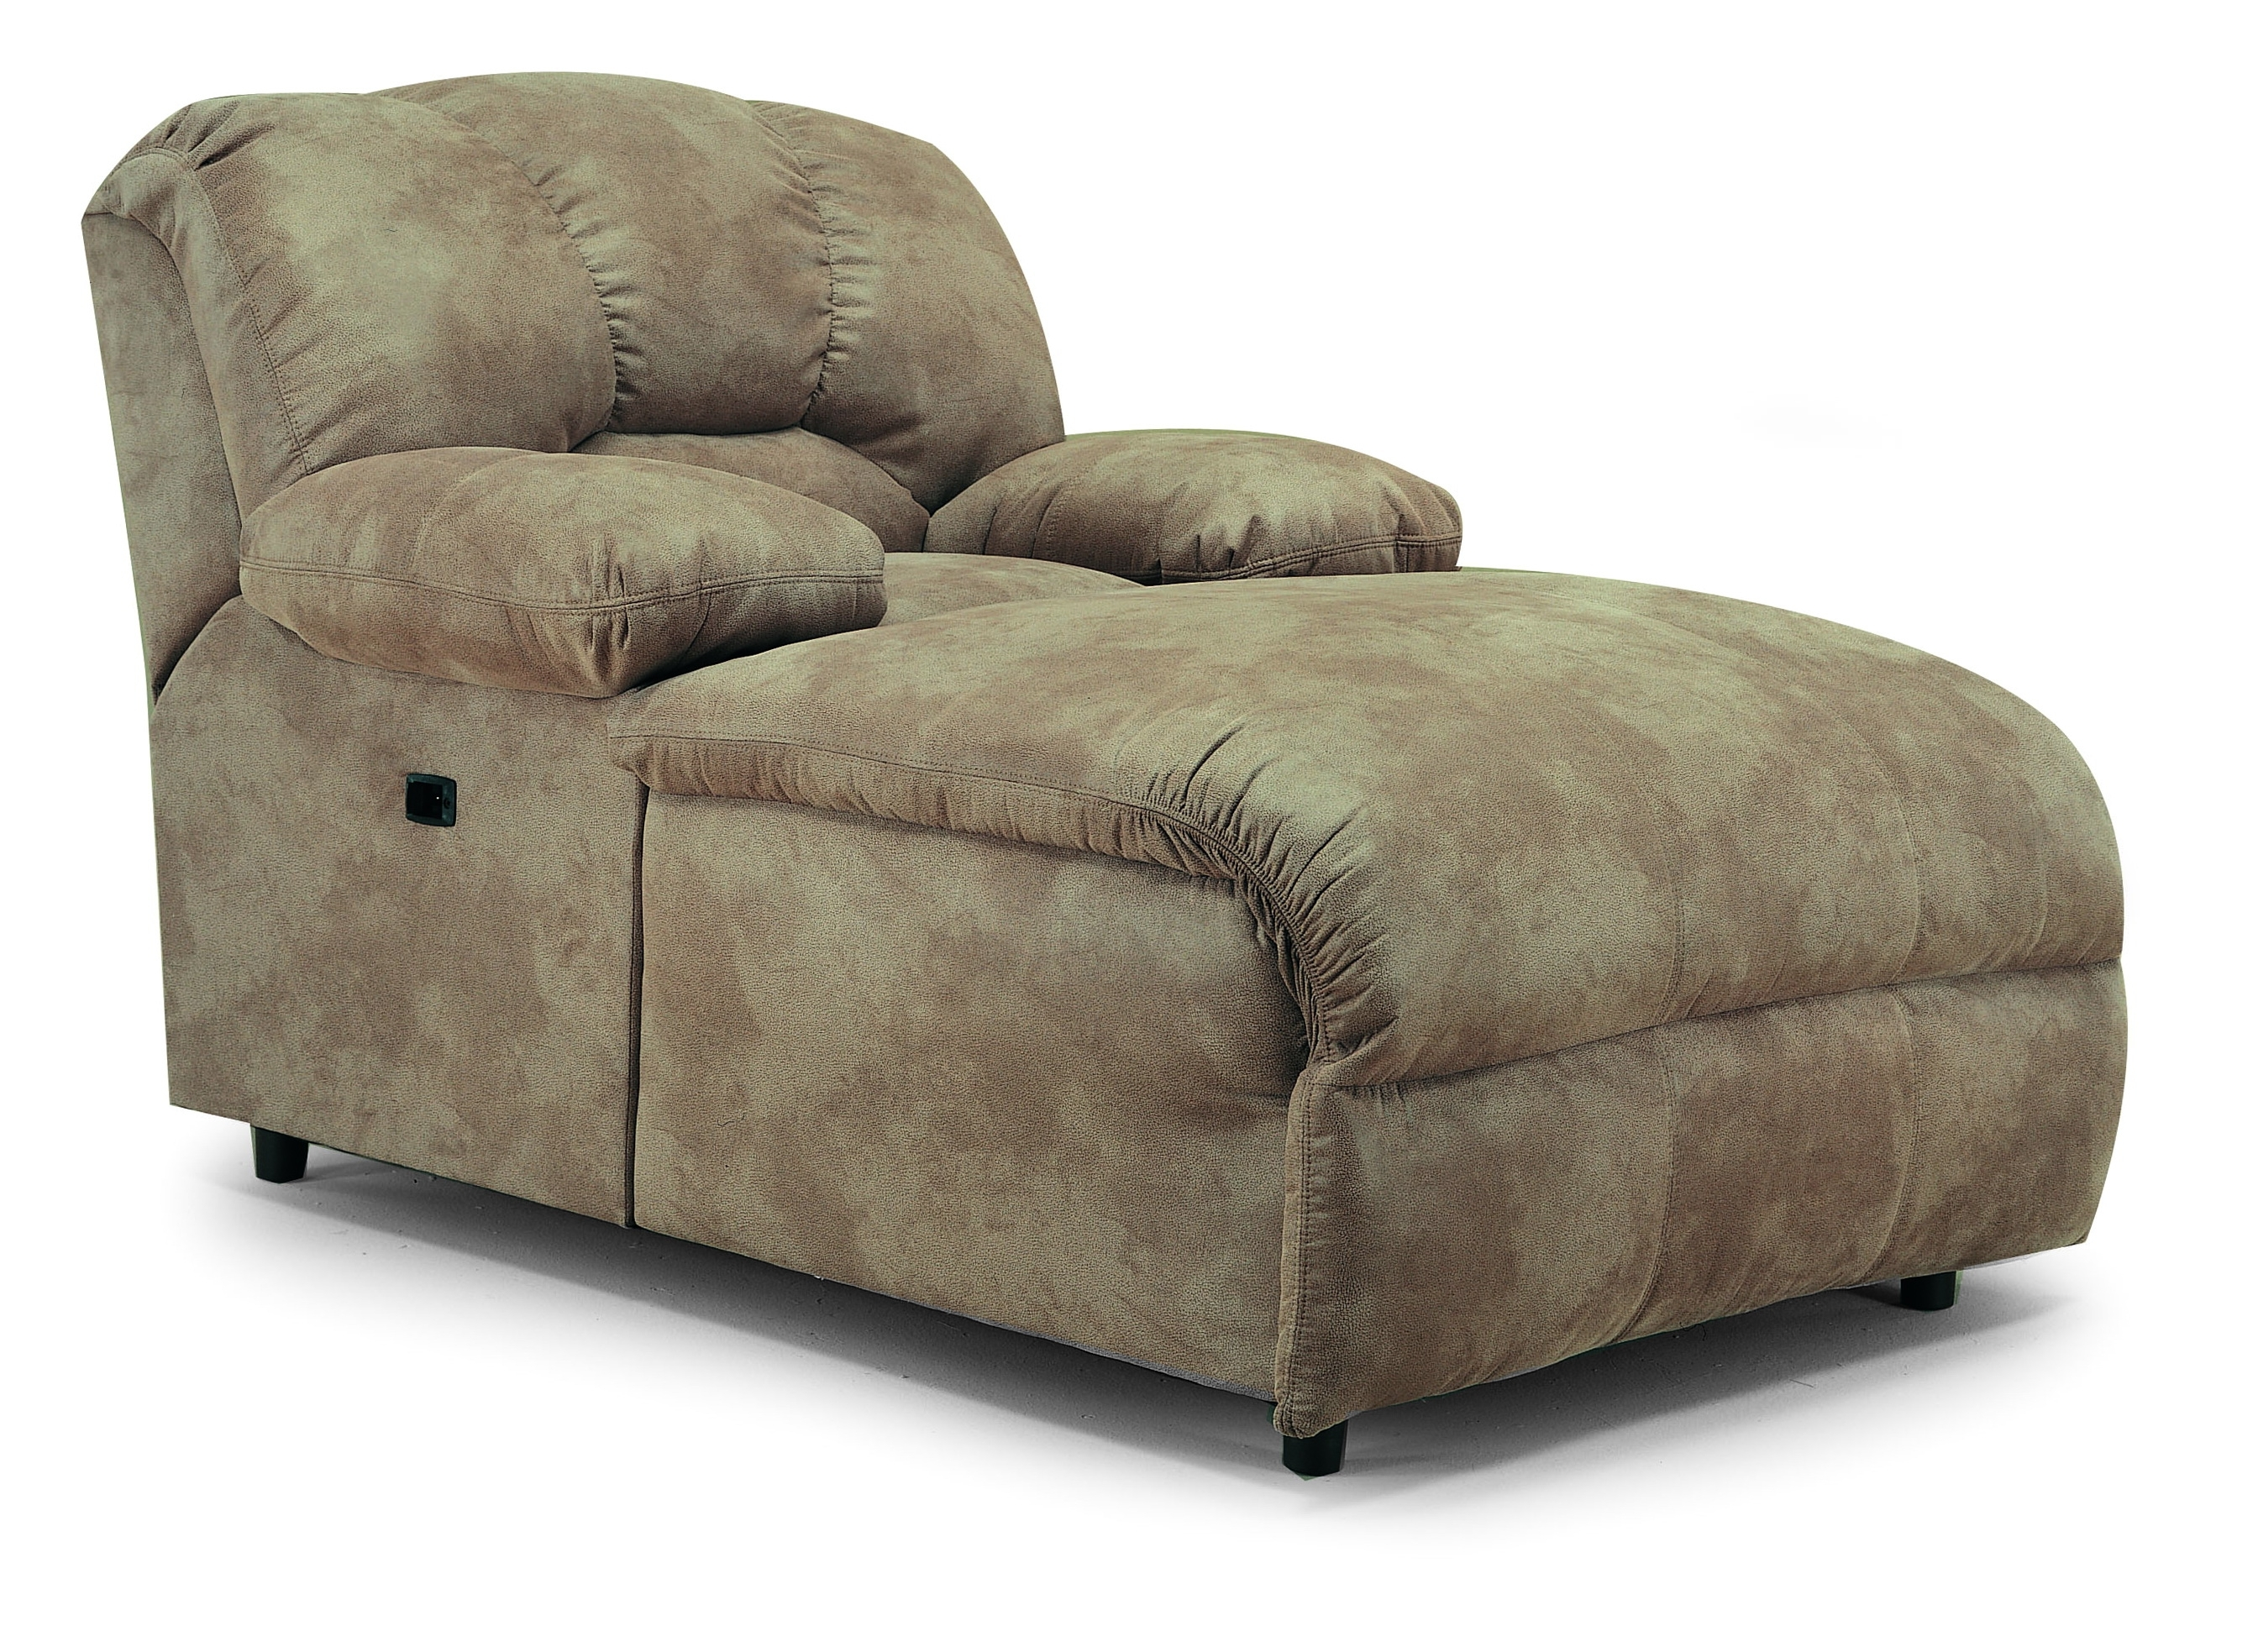 Popular Chaise Recliners For Popular Of Reclining Chaise Lounge With Recliner Chaise Lounge My (View 11 of 15)